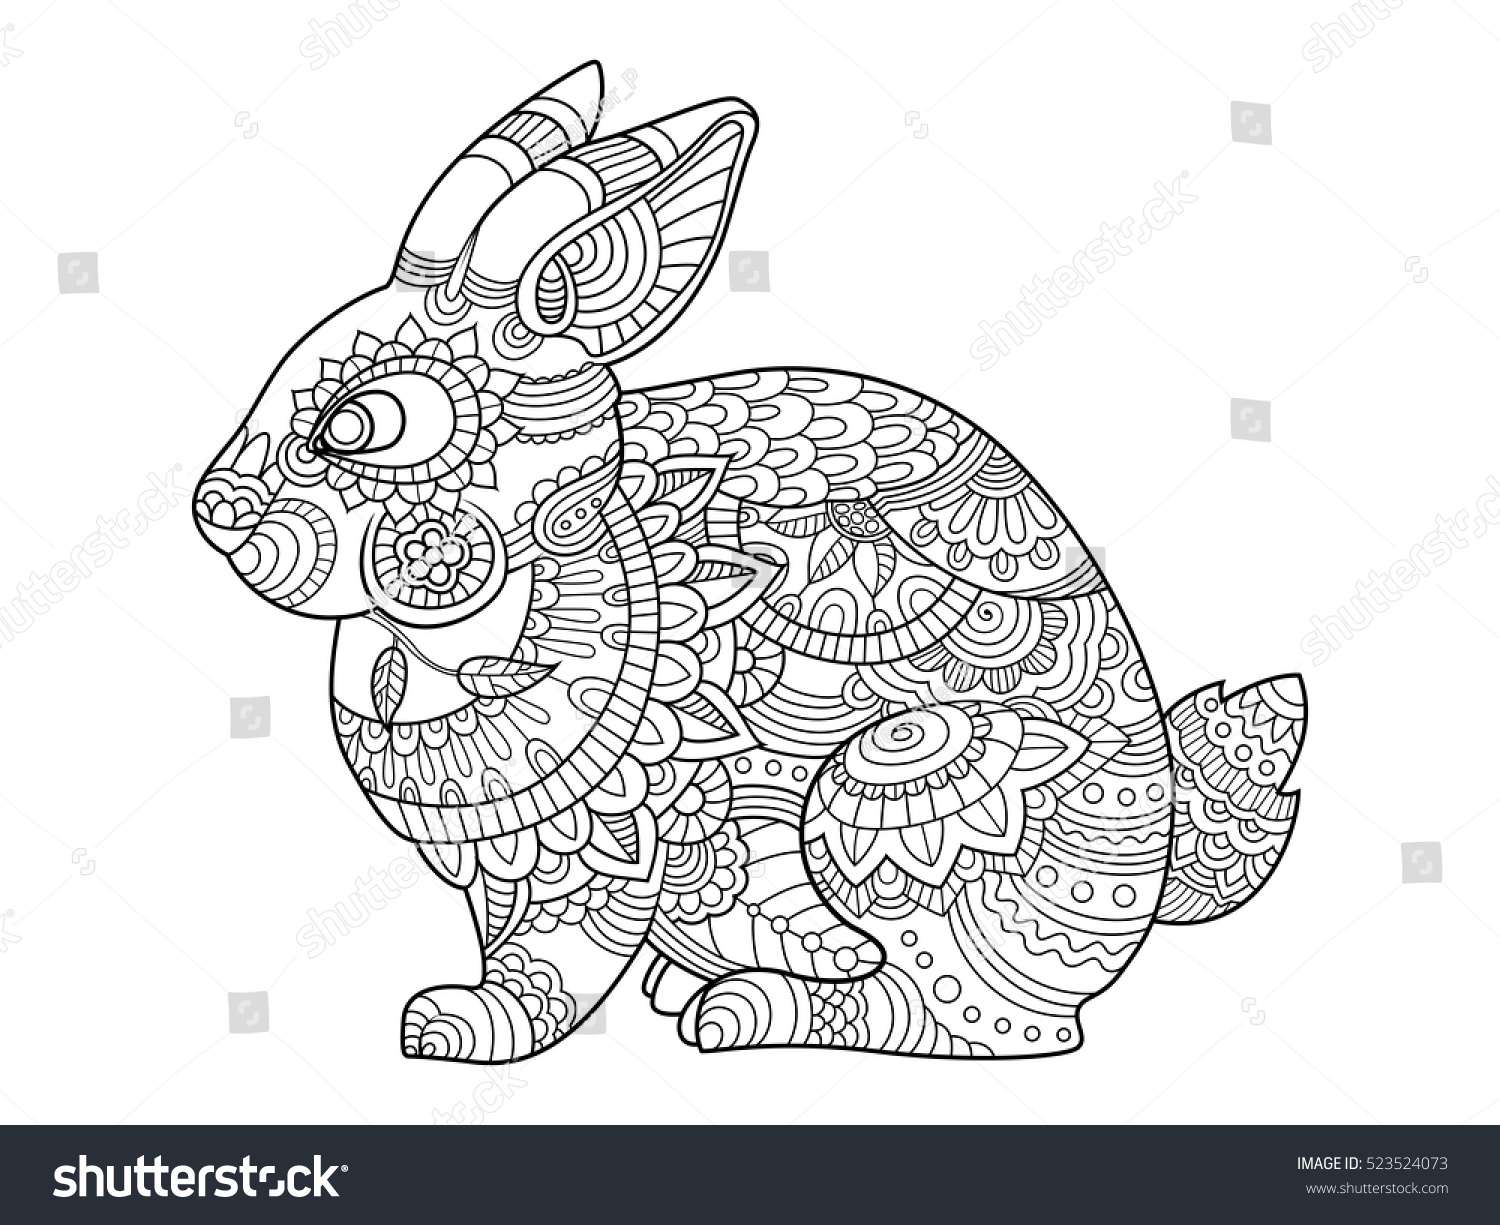 rabbit bunny coloring book for adults vector illustration anti stress coloring for adult